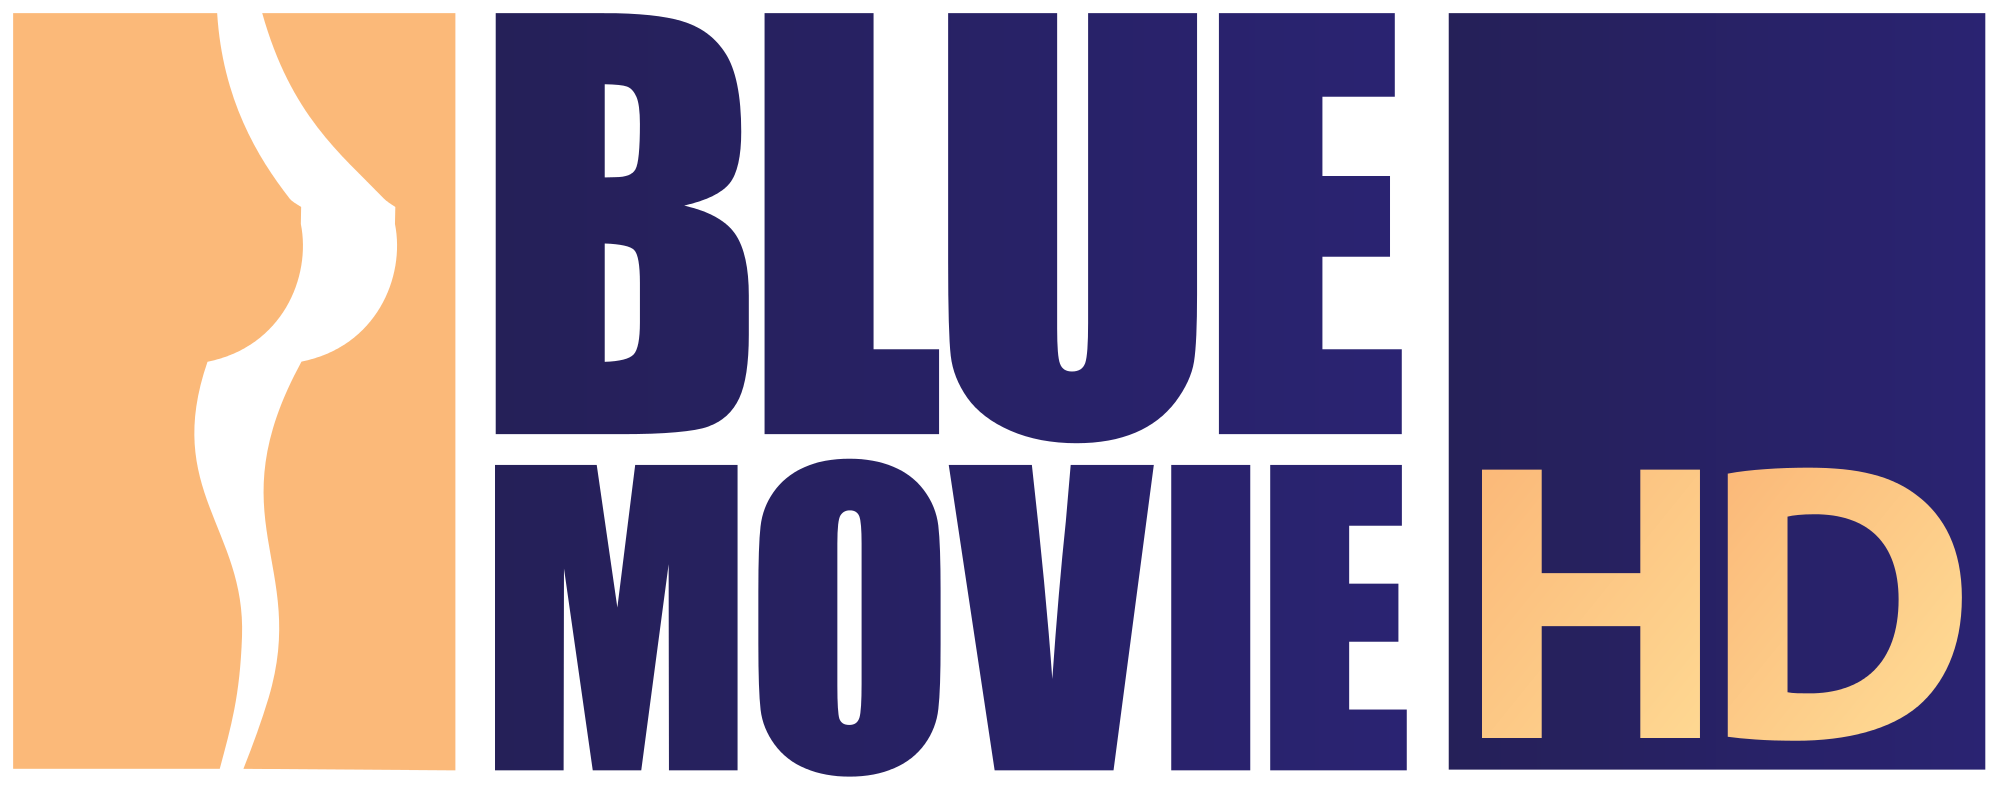 Blue movies in png. Movie image